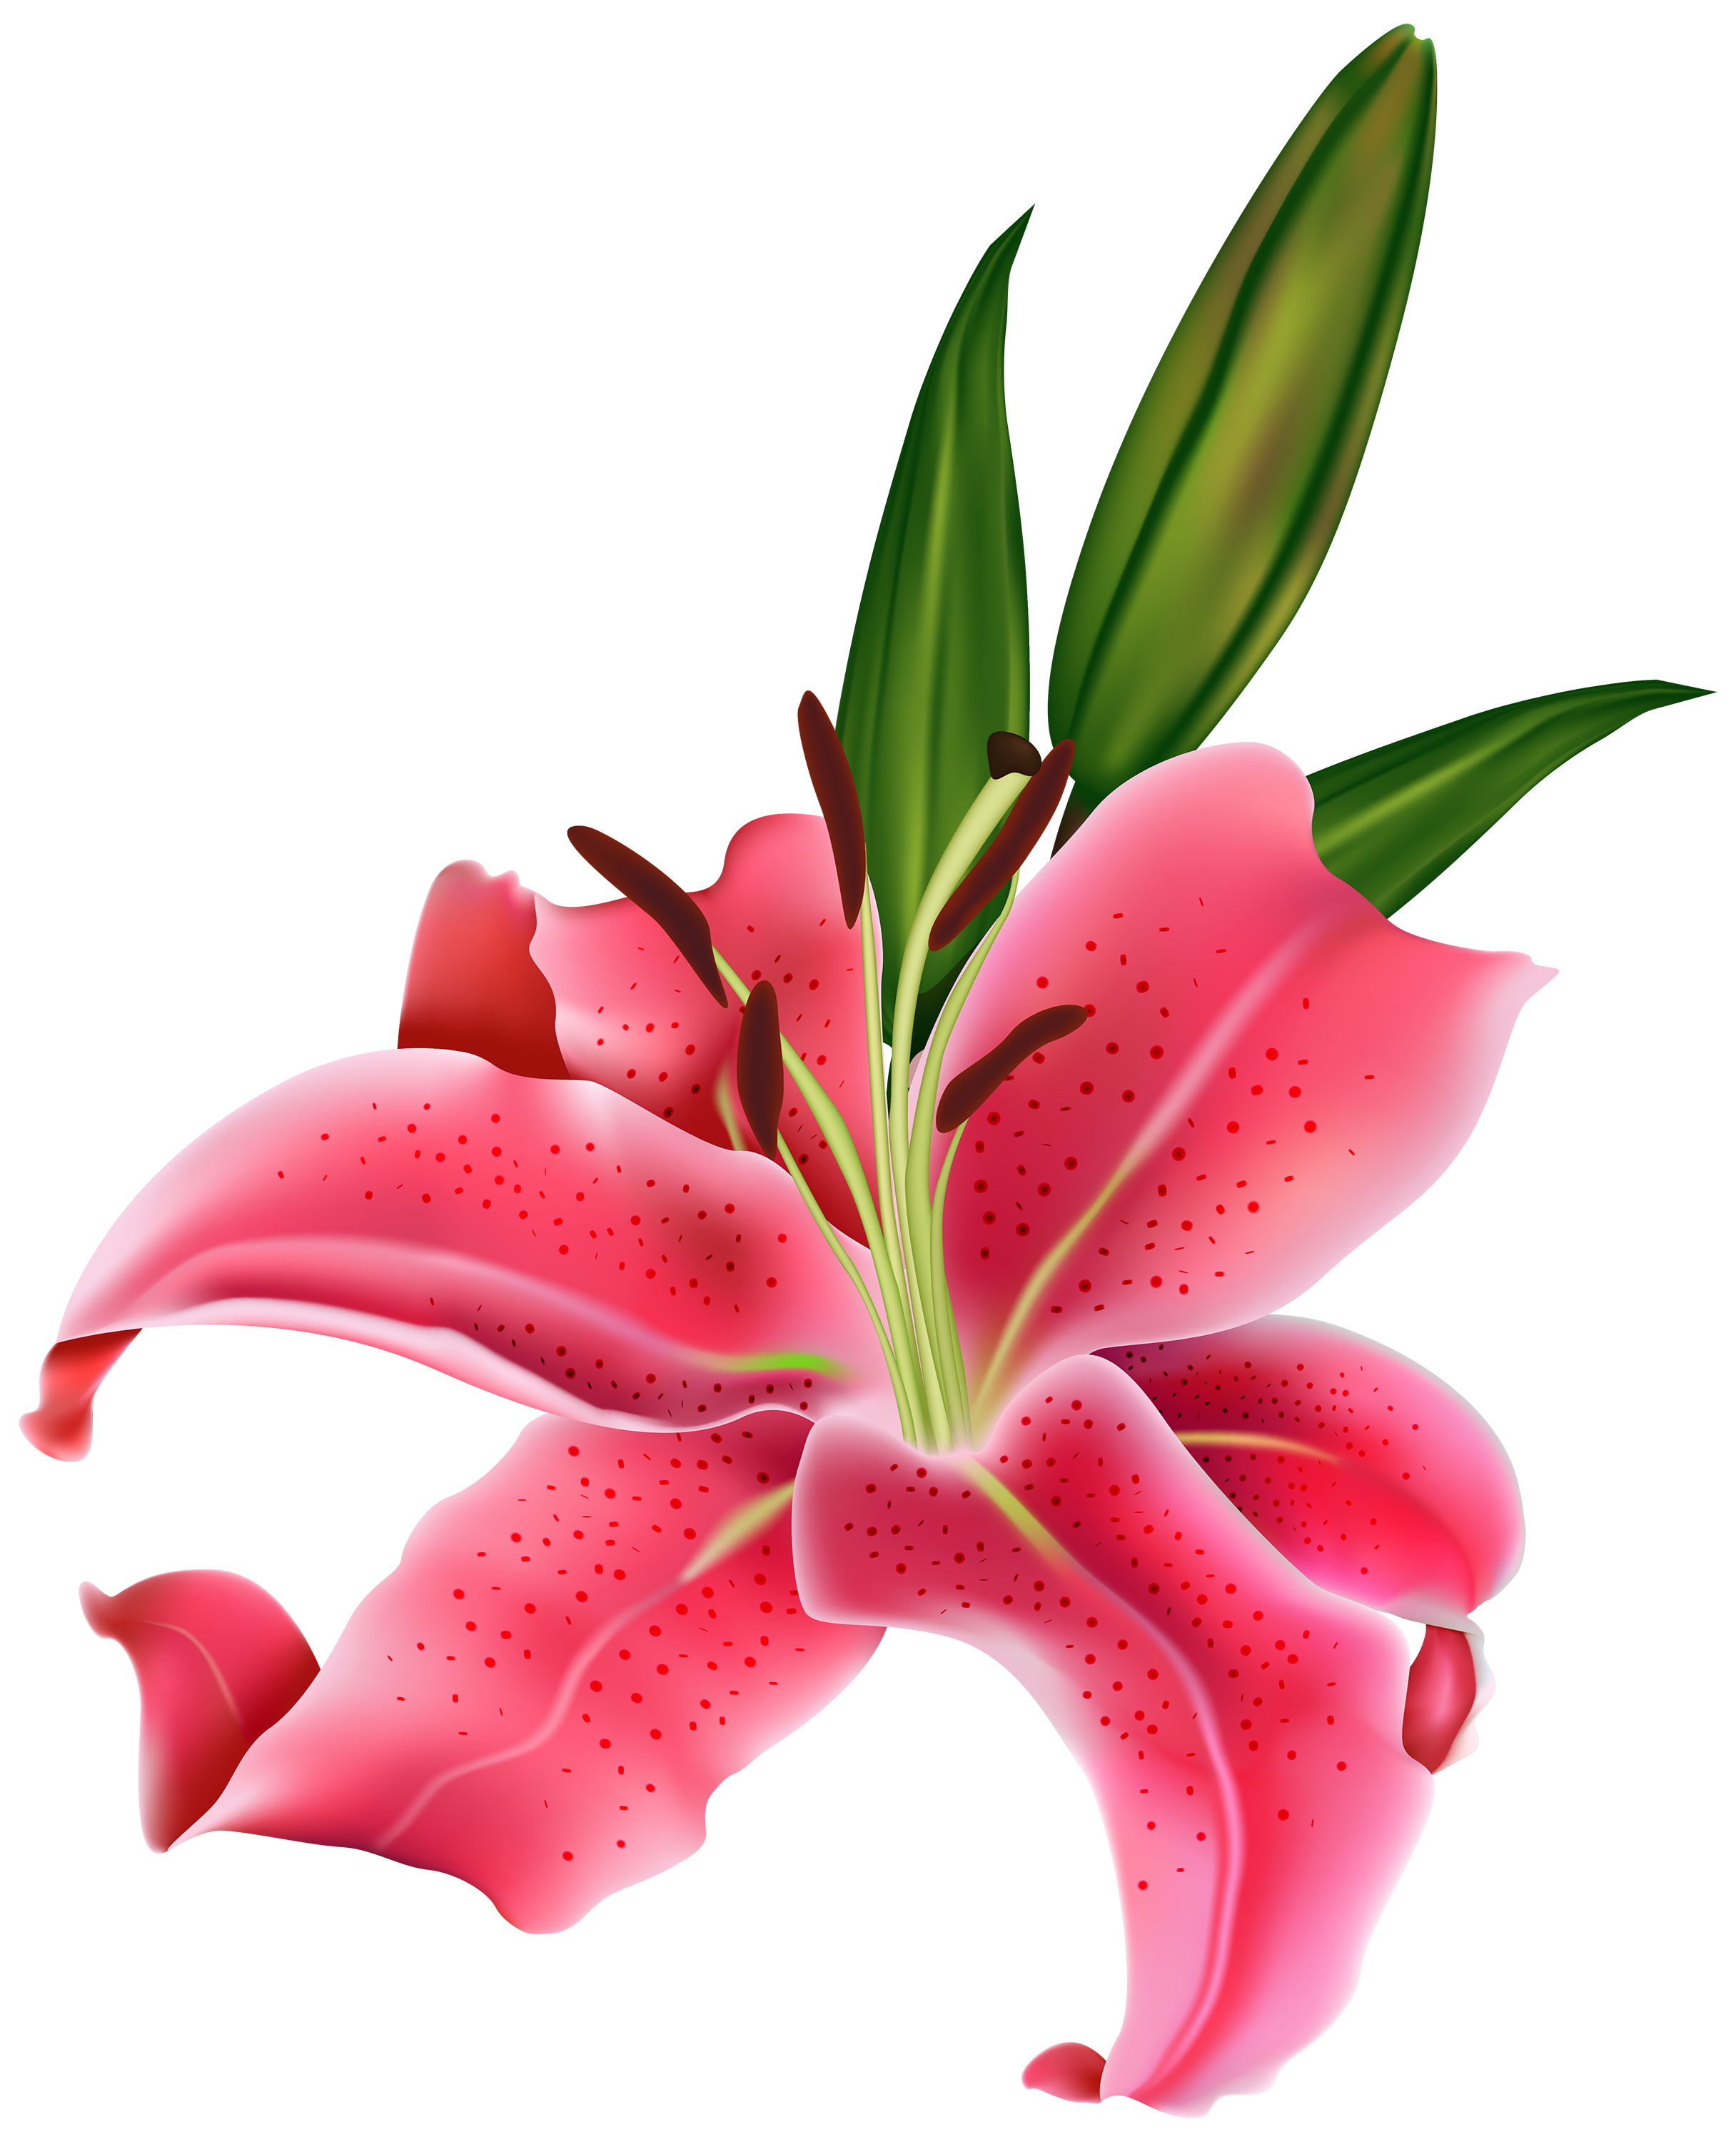 Growing flower clipart svg freeuse stock Pink lilies clipart #2 | Flores | Pinterest | Pink lily, Clipart ... svg freeuse stock